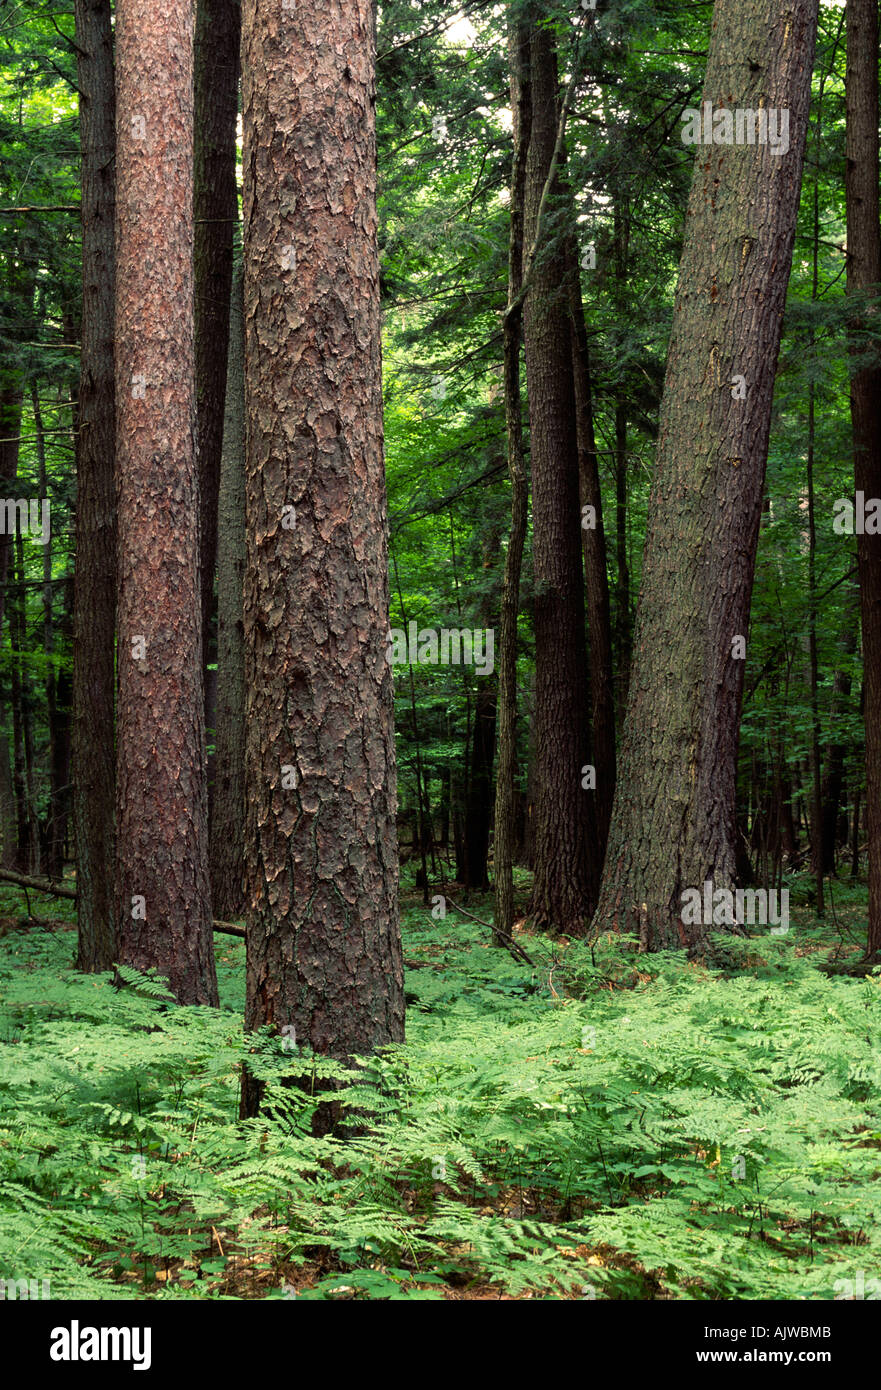 Old growth white pine and red pine forest, Hartwick Pines State Forest, Michigan - Stock Image